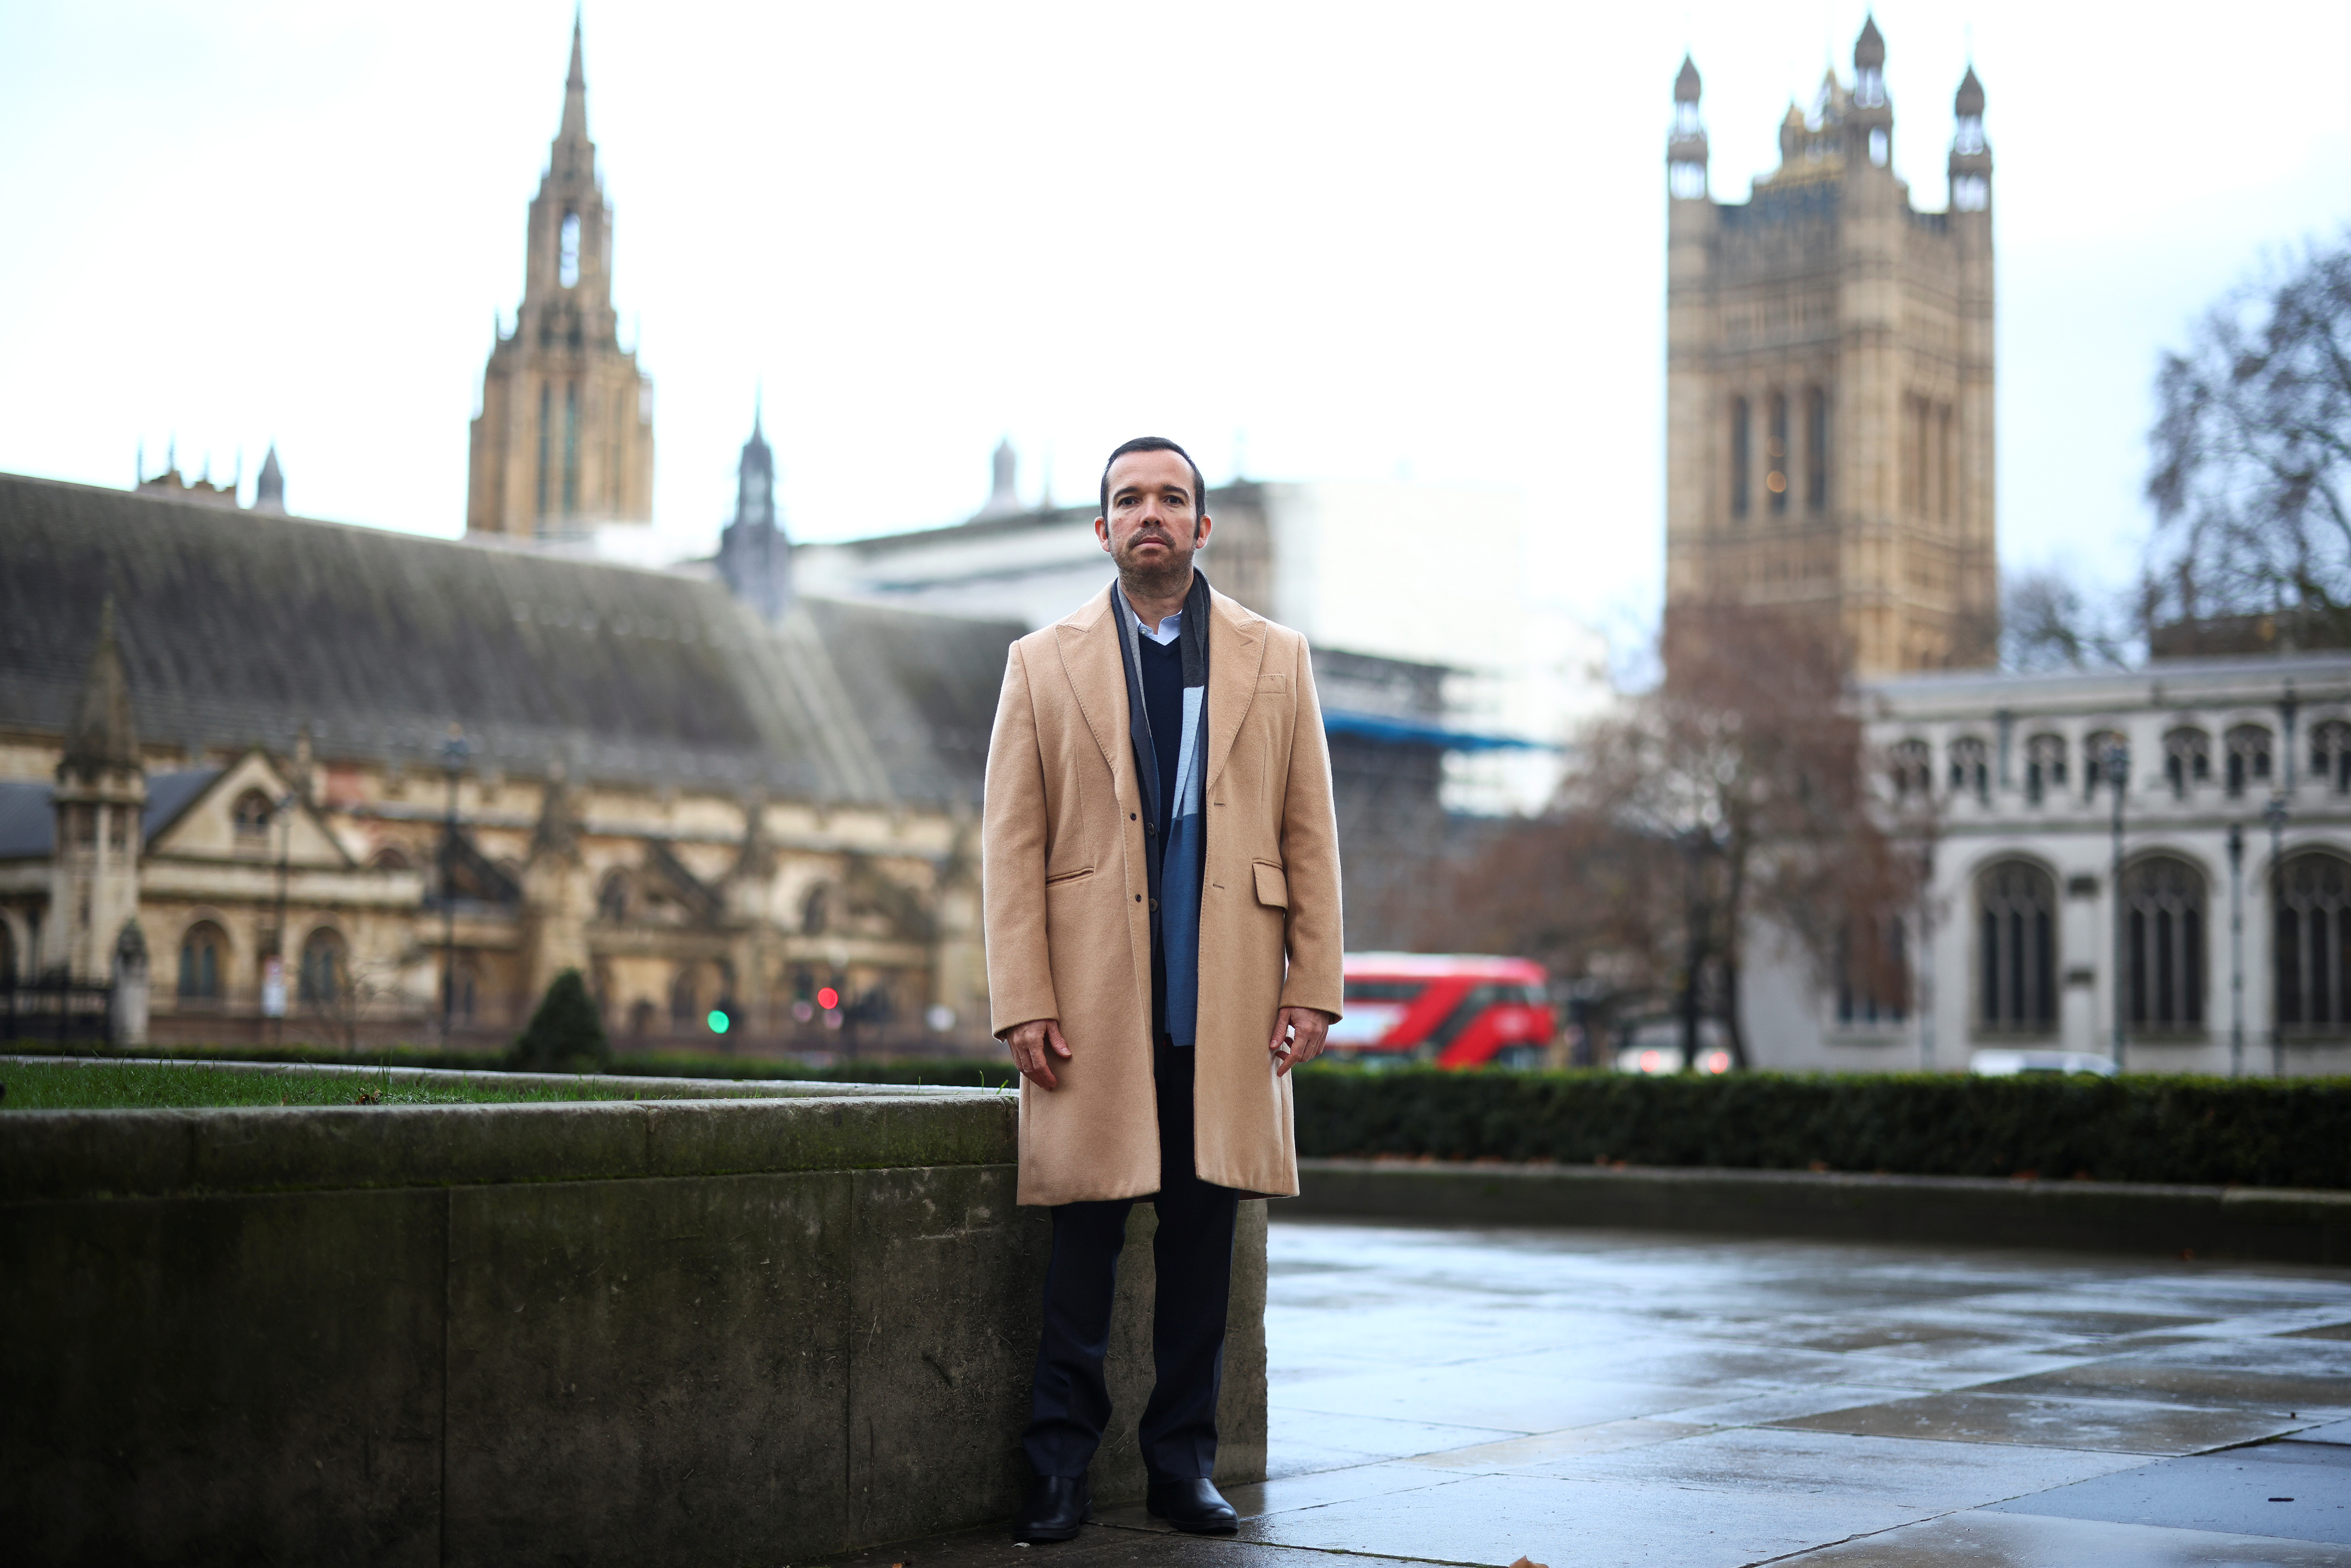 Antonio Mugica, CEO of Smartmatic, poses near to Houses of Parliament in London, Britain, December 11, 2020. Picture taken December 11, 2020. REUTERS/Henry Nicholls